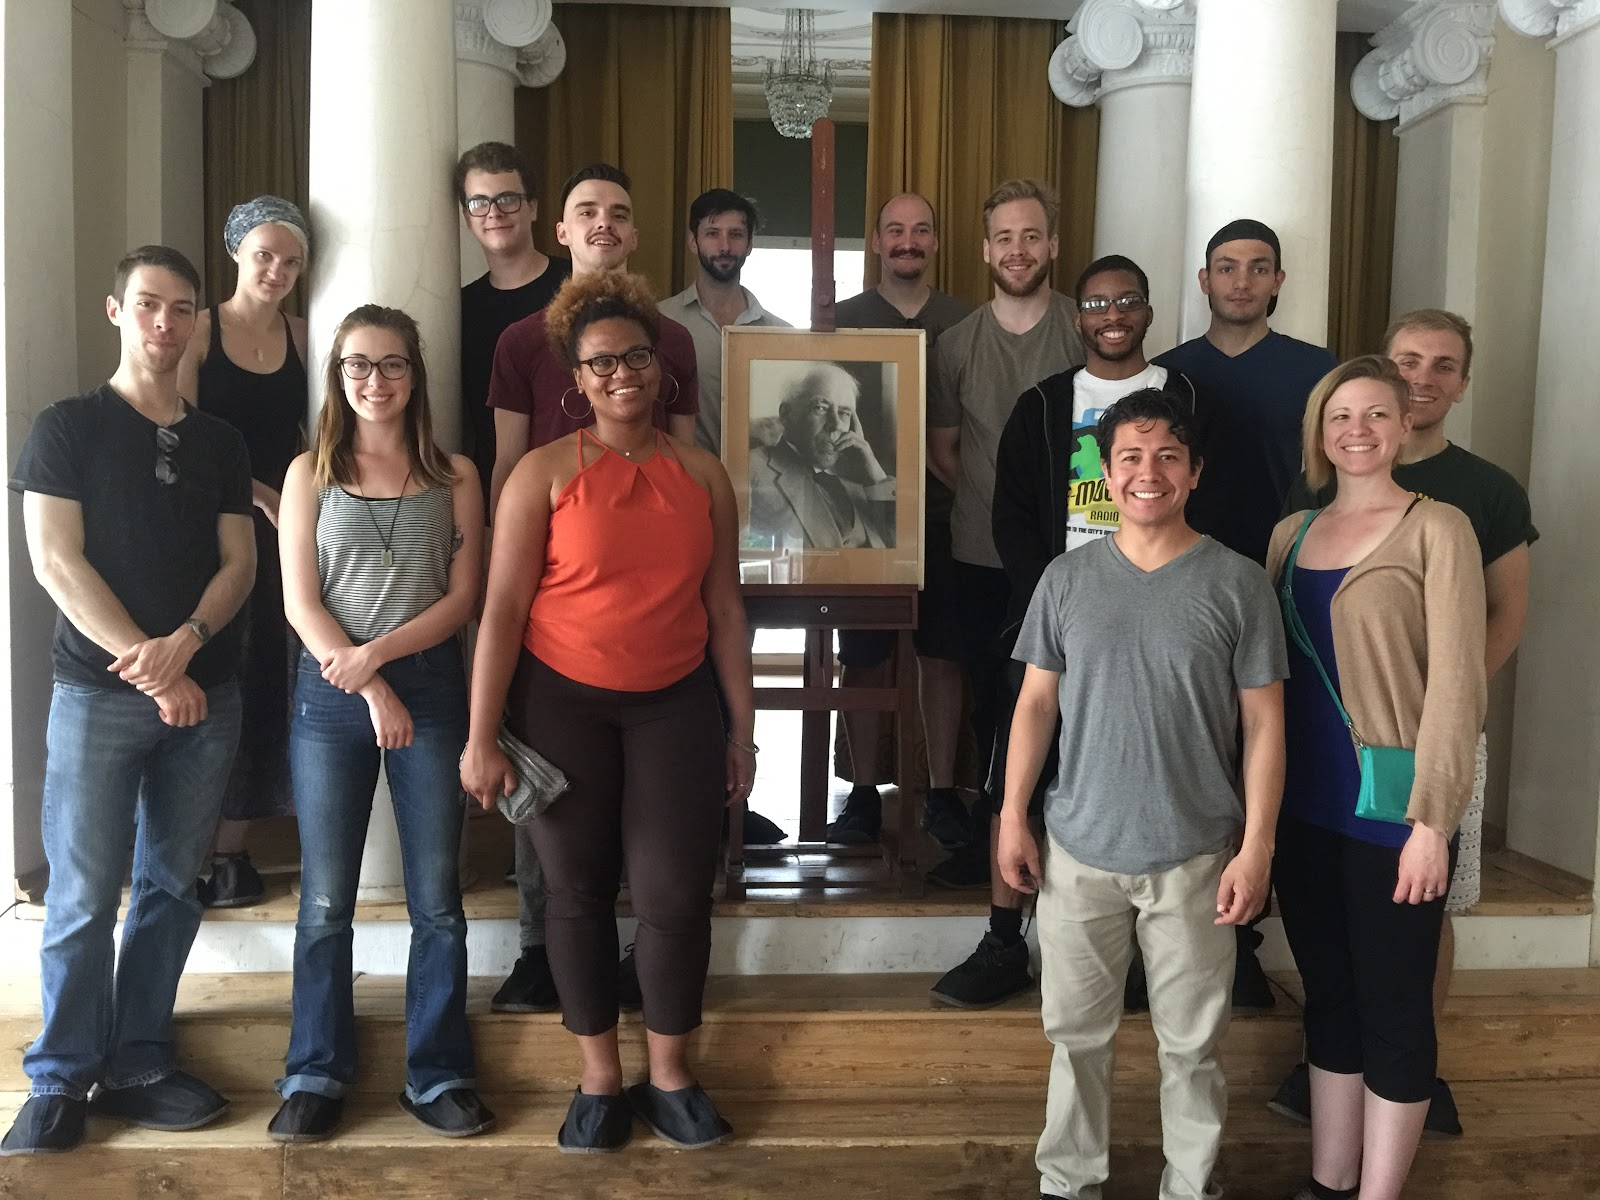 WSU Theatre students pose in front of a portrait of Konstantin Stanislavsky in Moscow, Russia